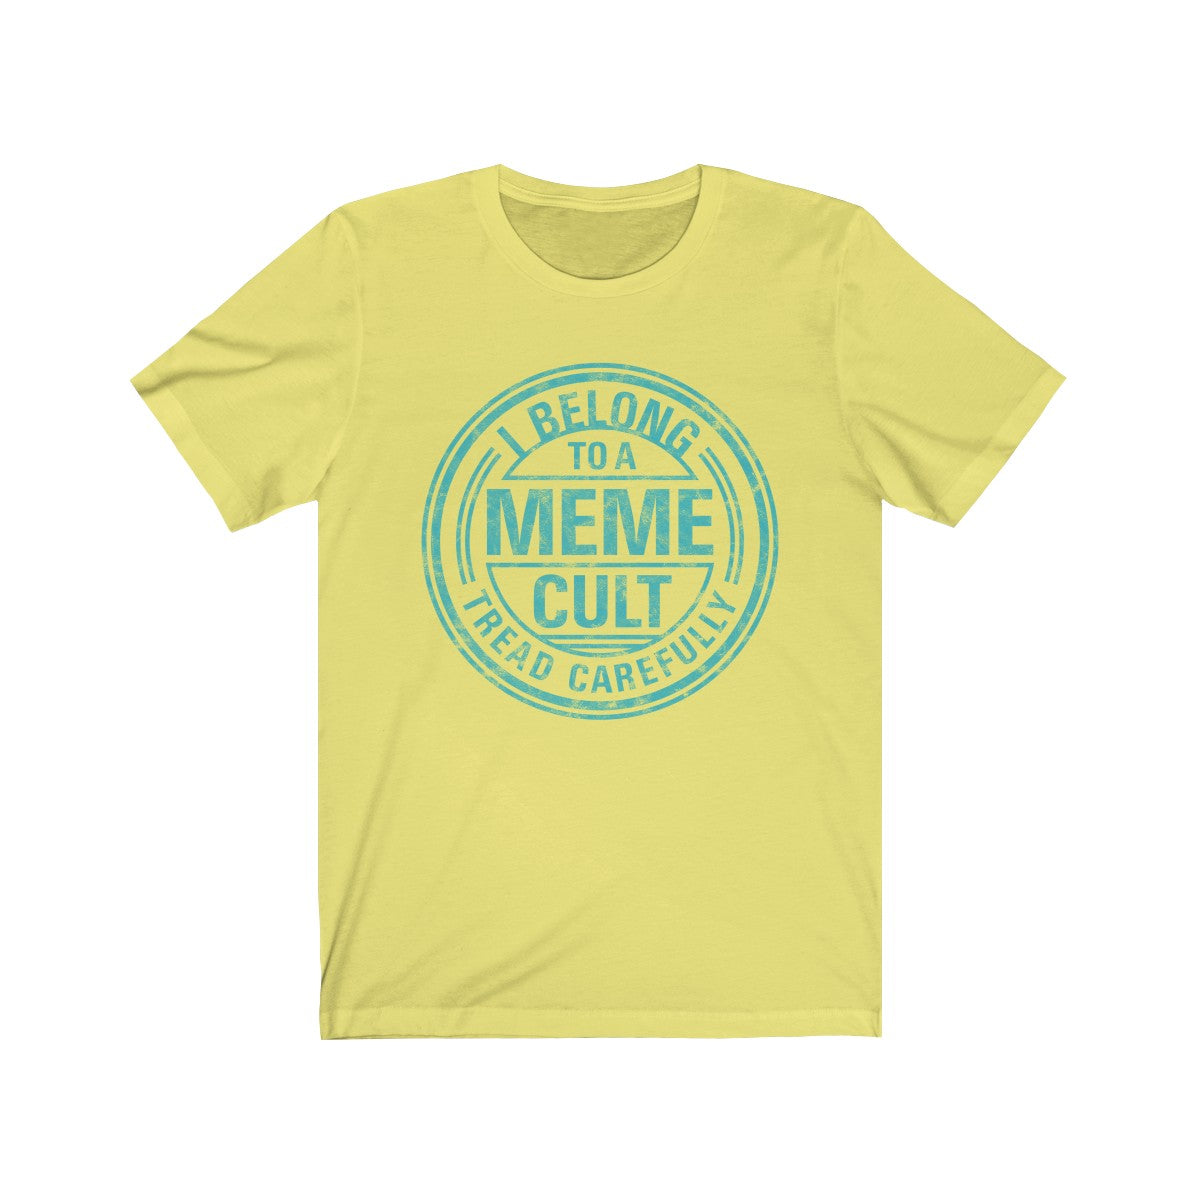 SACRED CLOWNS . Meme Cult . Turquoise Print . Unisex Jersey Short Sleeve Tee